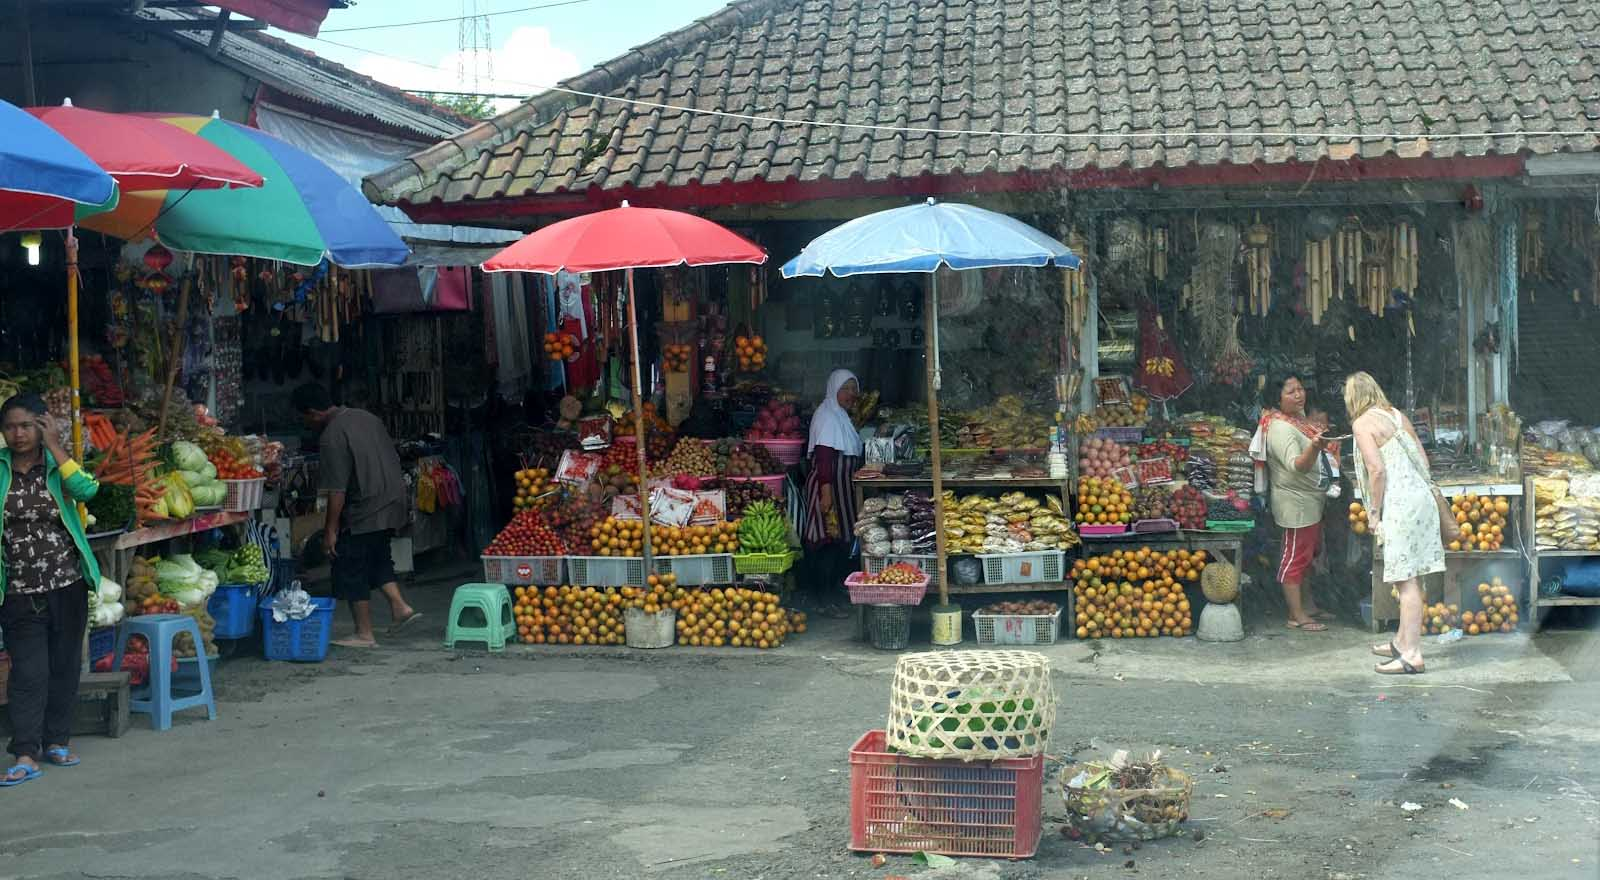 If you are in the market for fresh fruits, vegetables, and spices, Candi Kuning Market – the f